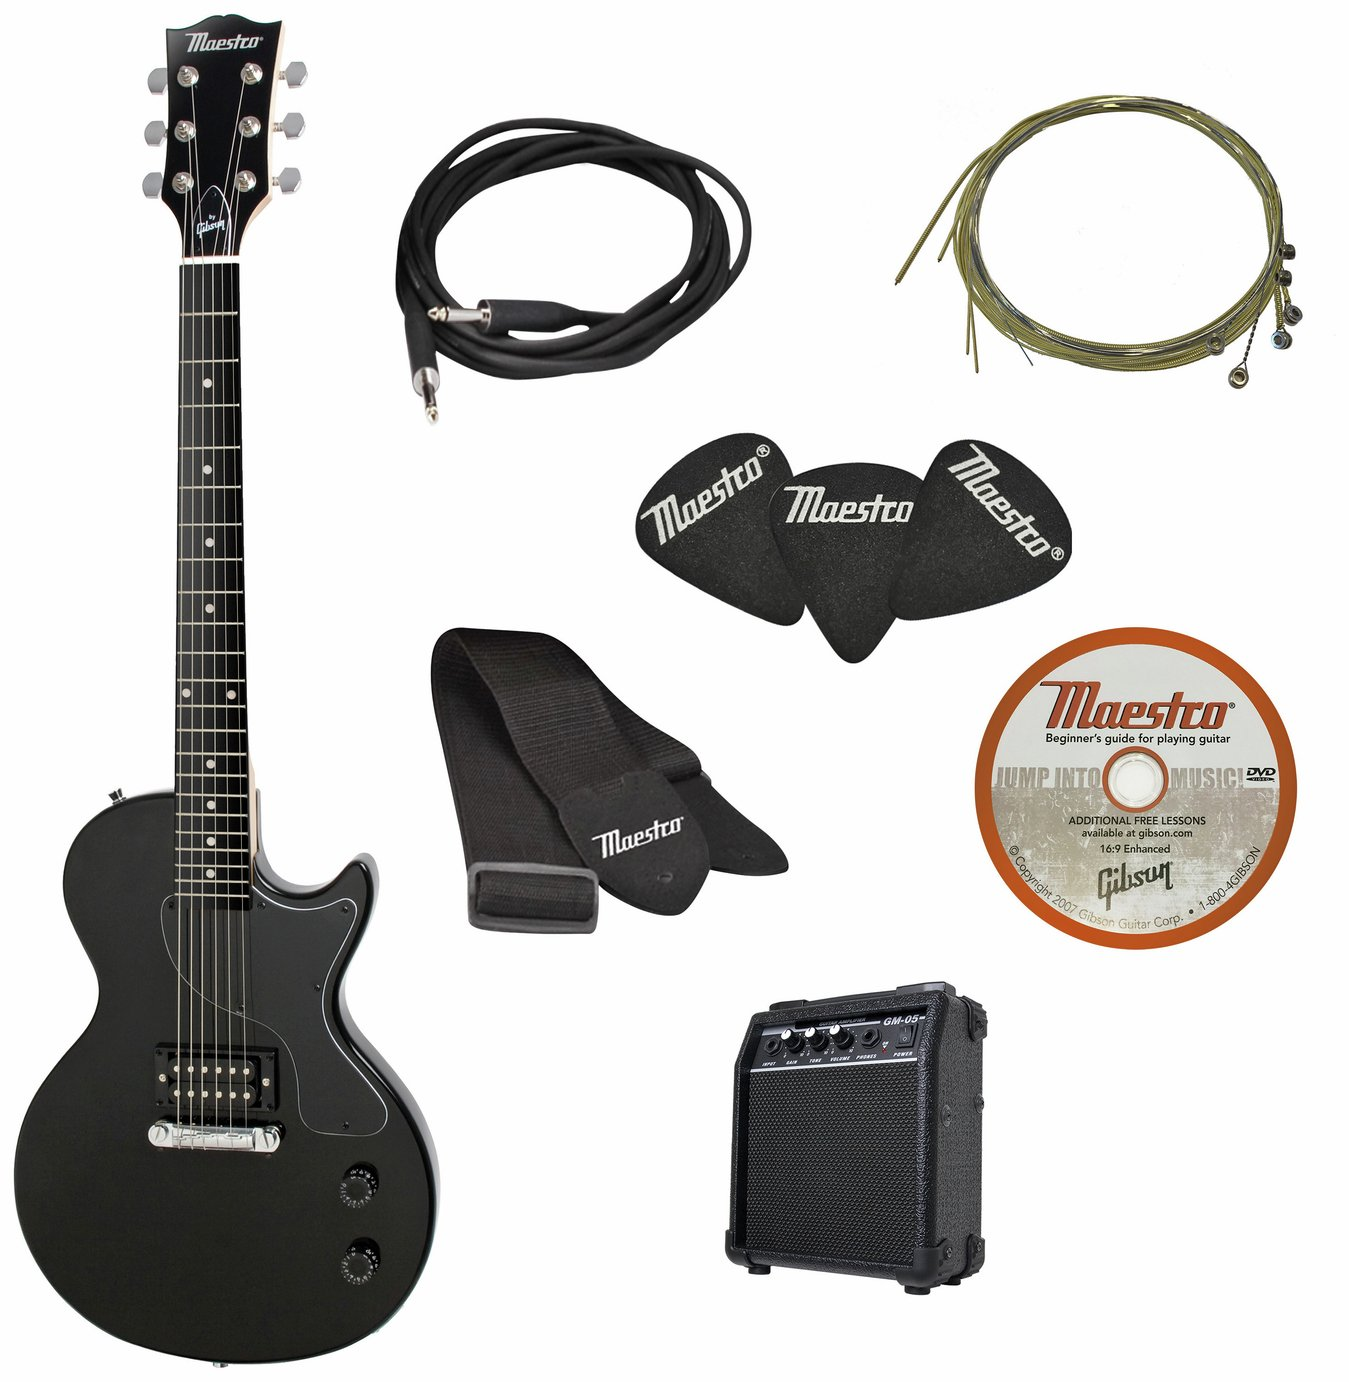 Image of Maestro by Gibson Electric Guitar with Amp Pack - Black